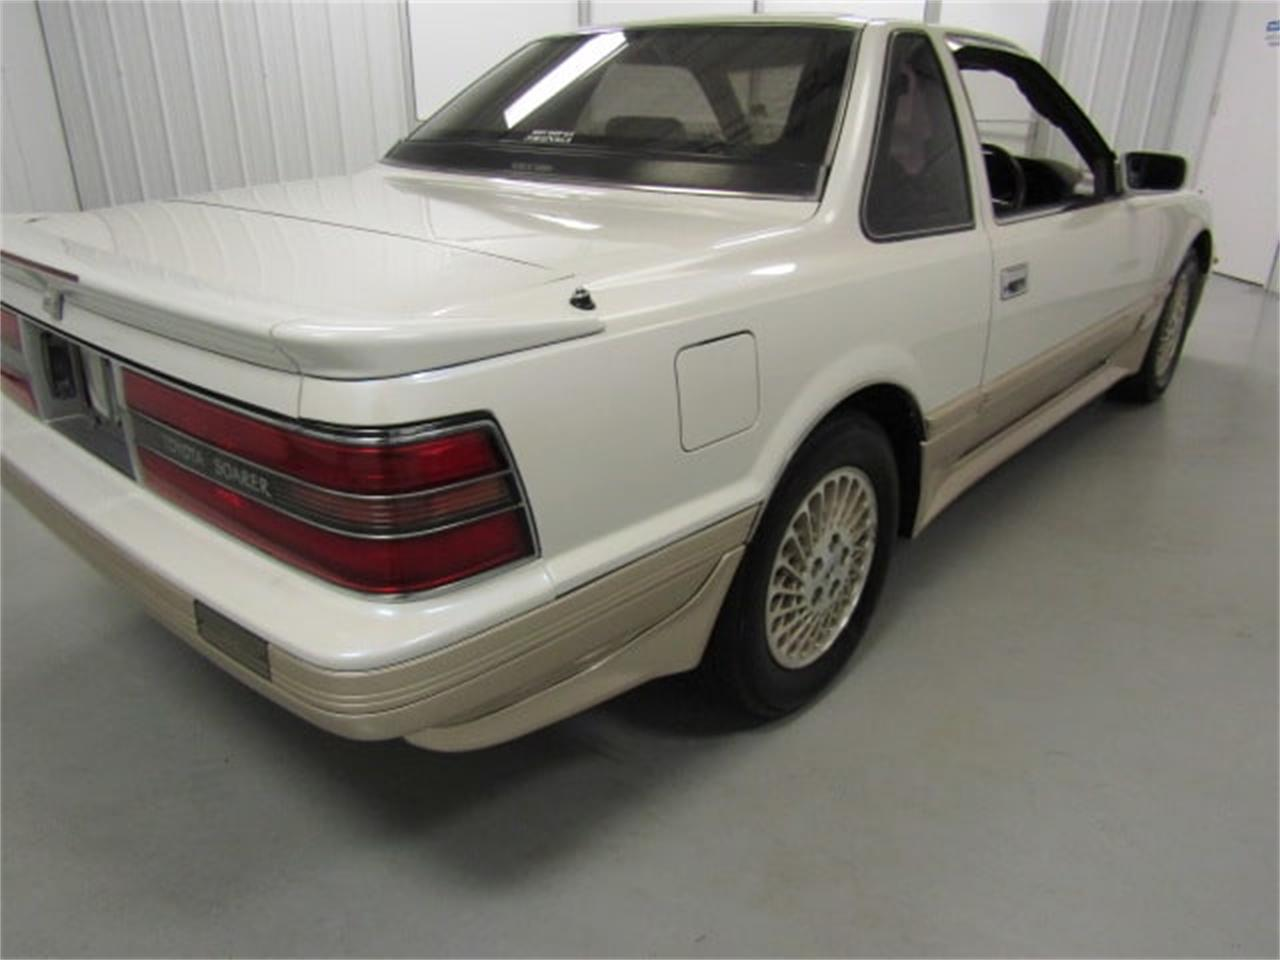 Large Picture of '89 Toyota Soarer located in Christiansburg Virginia - $12,900.00 Offered by Duncan Imports & Classic Cars - LN7J